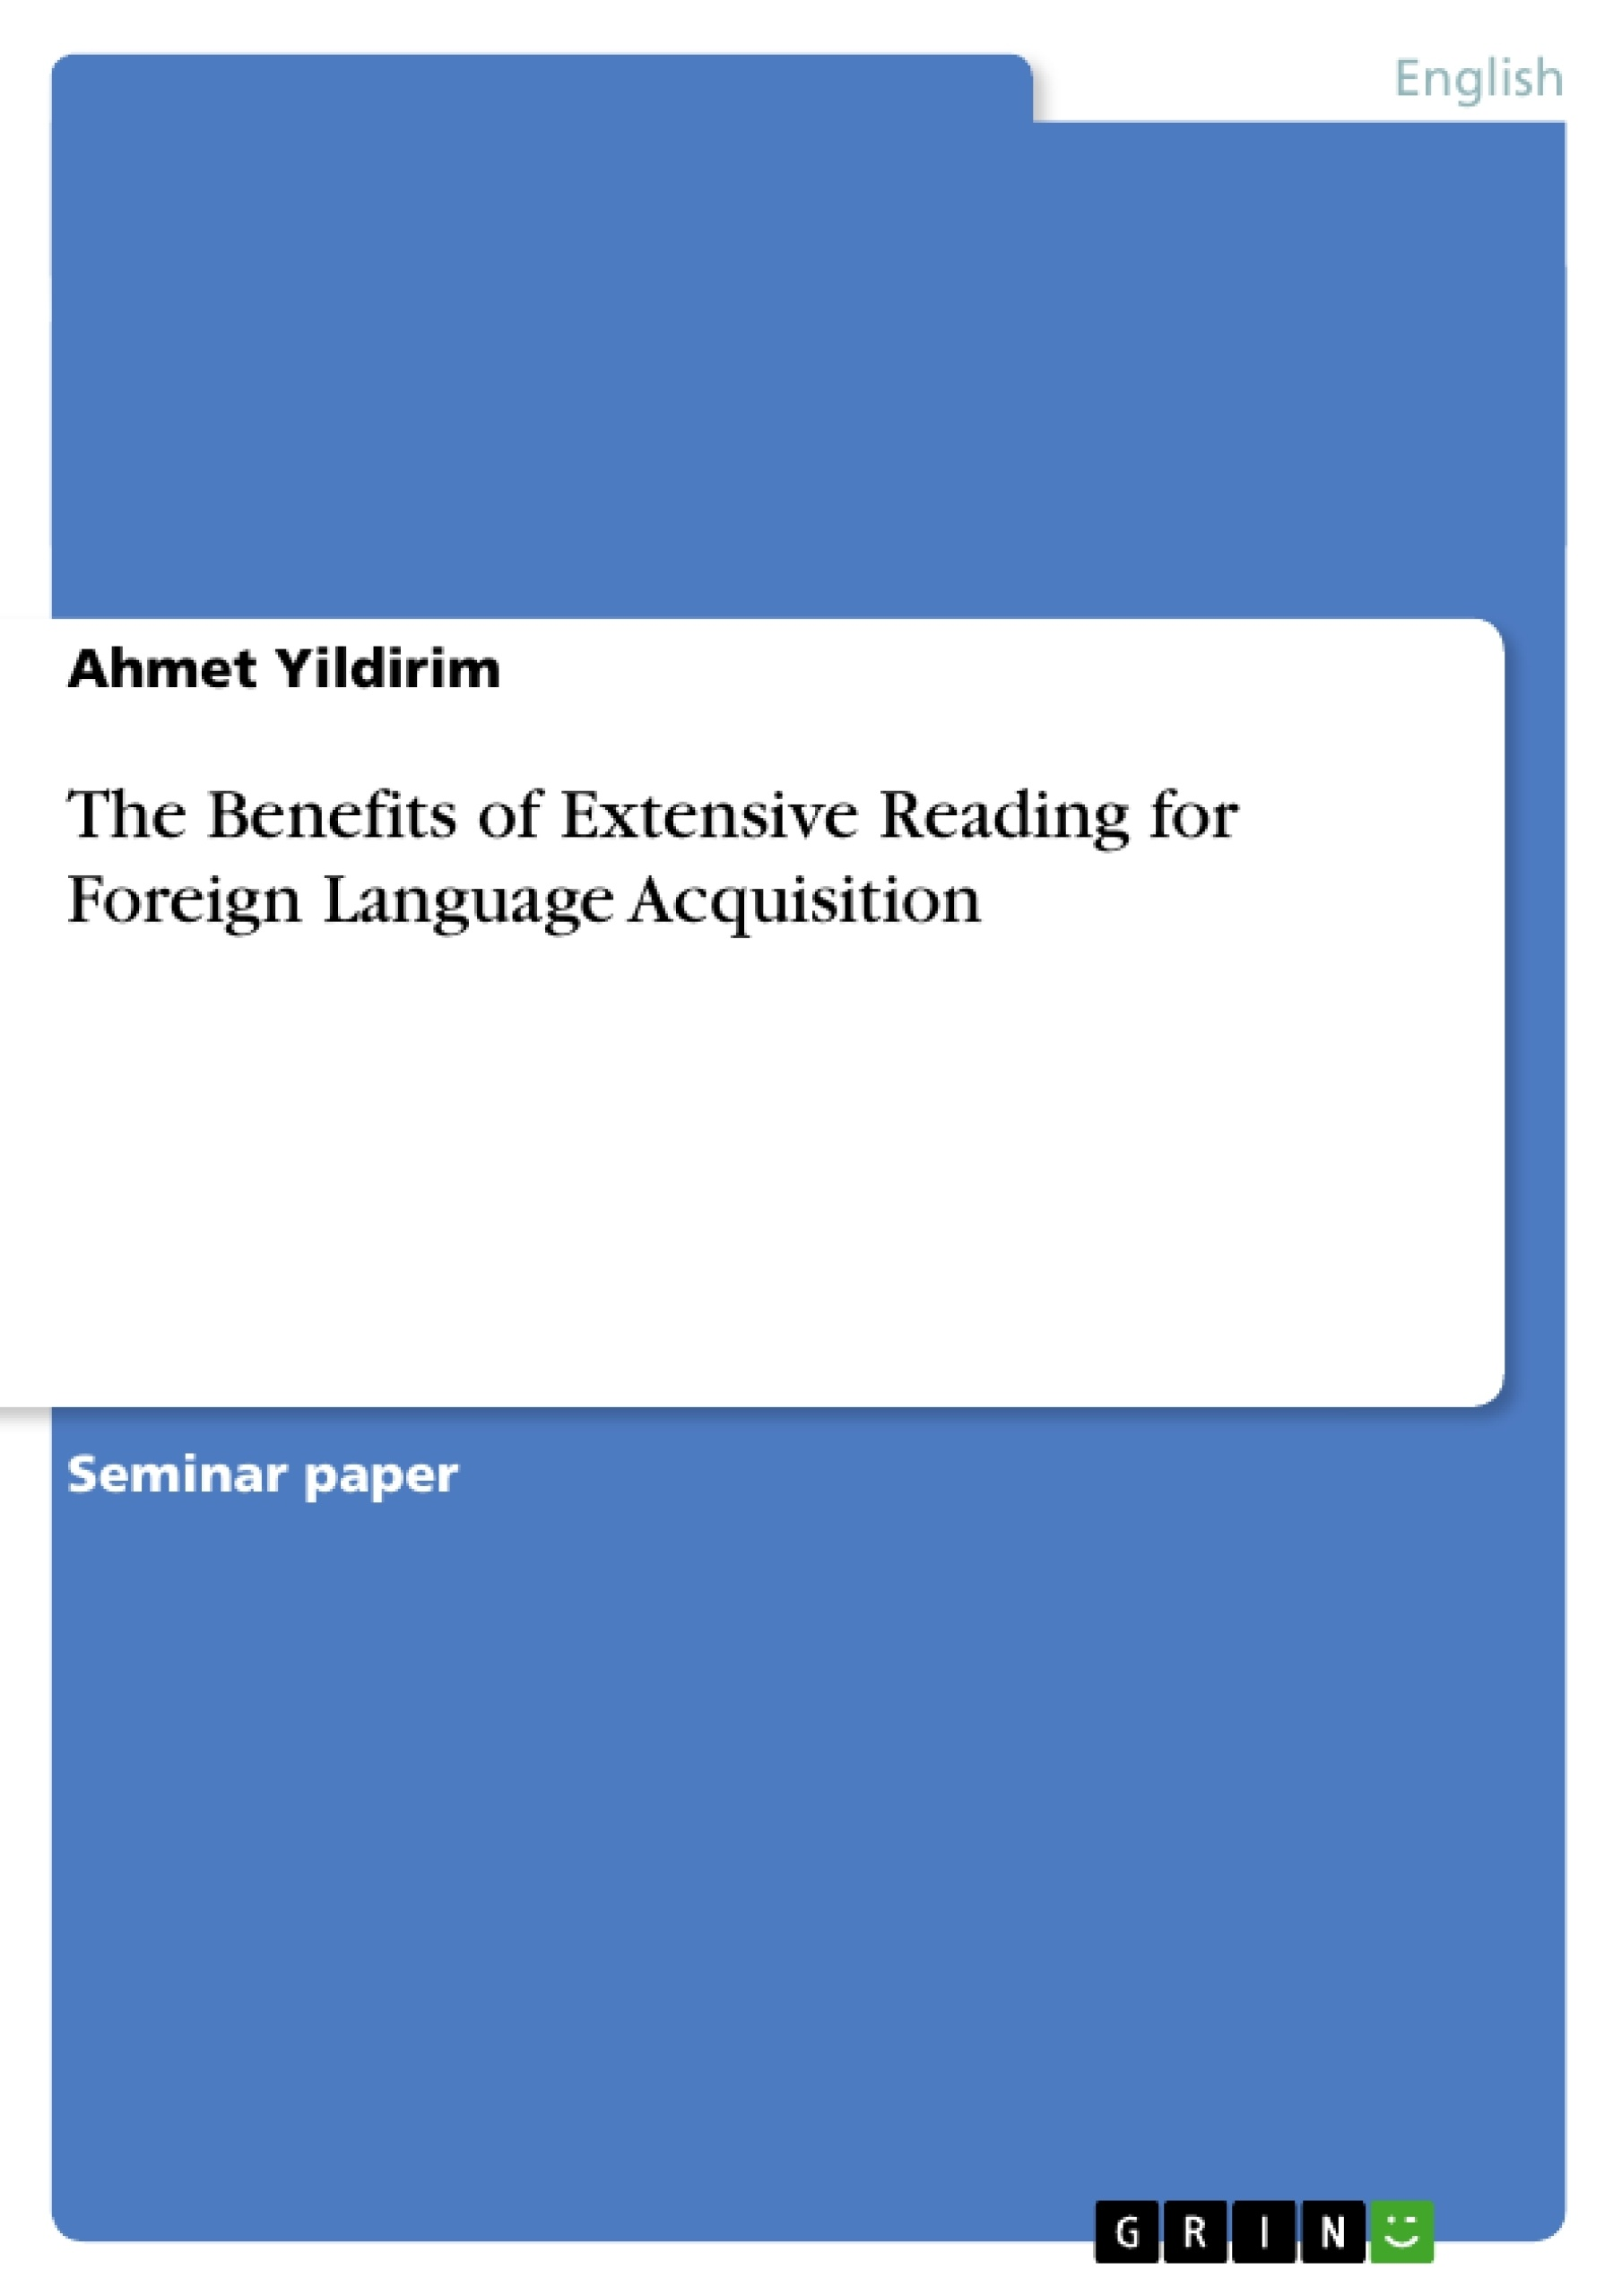 thesis on language acquisition